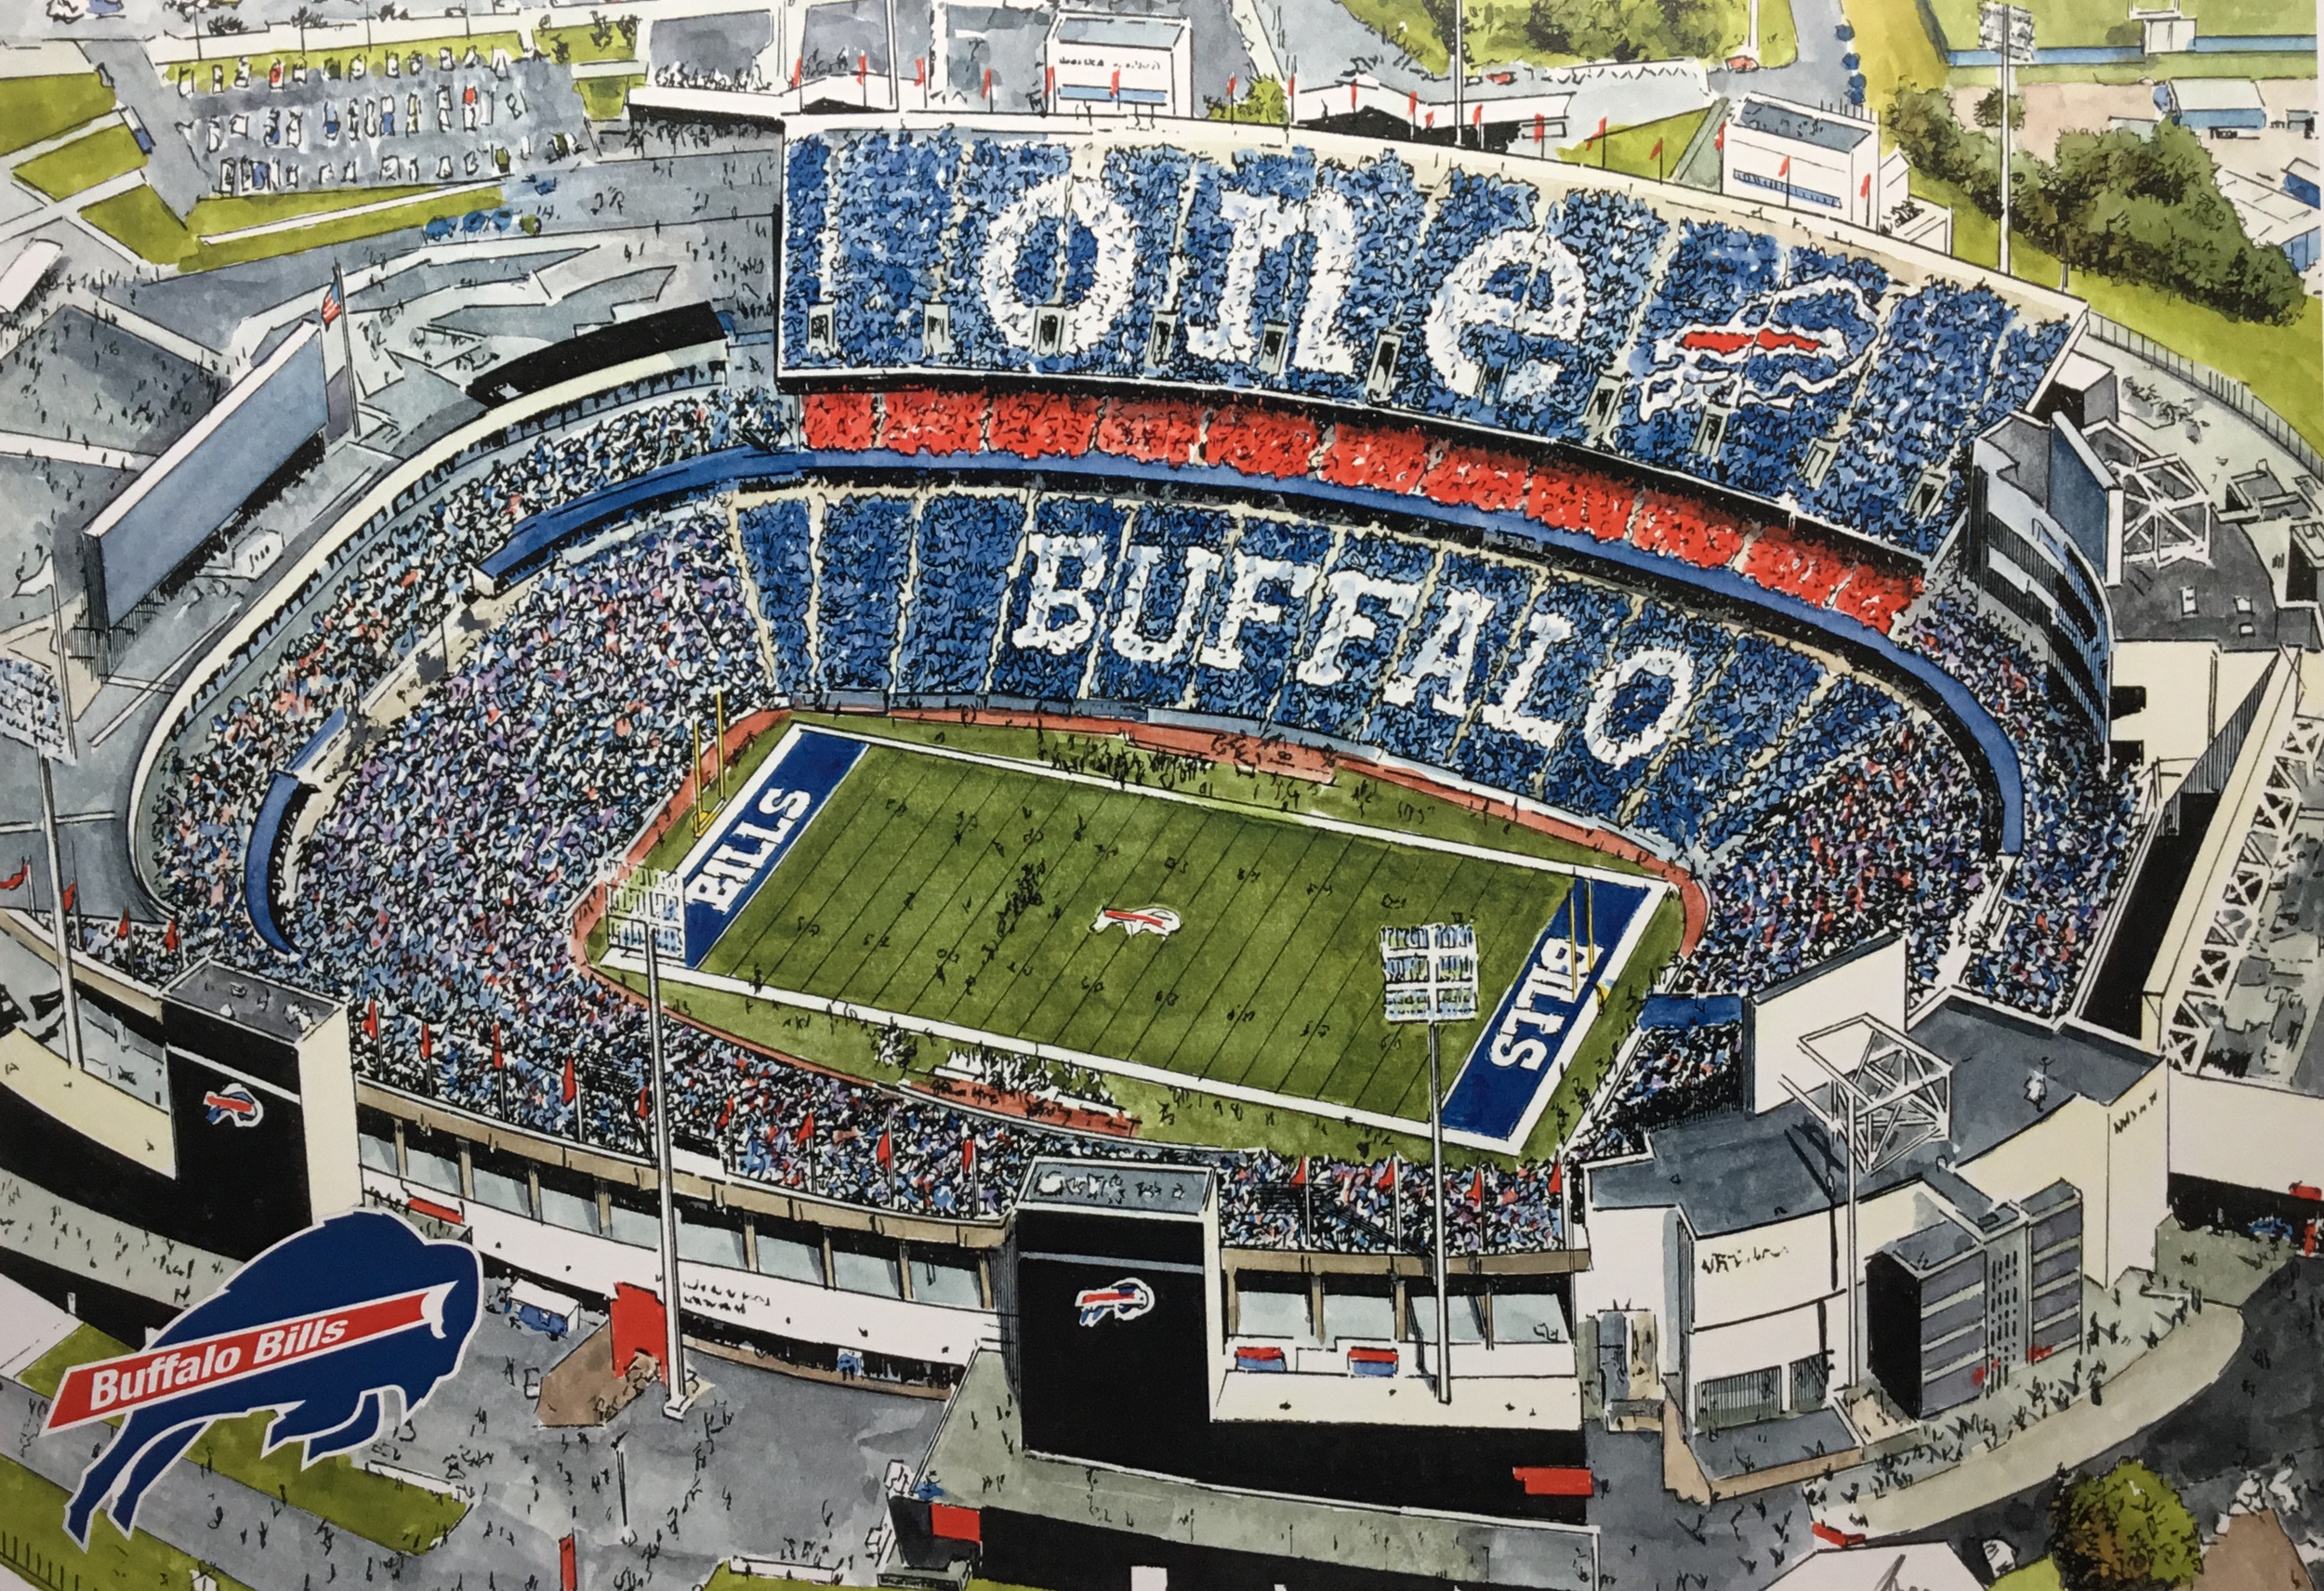 Buffalo Bills Ralph Wilson Stadium Limited Edition Pen And Ink And Watercolor Art Print By John Stoeckley Reflections